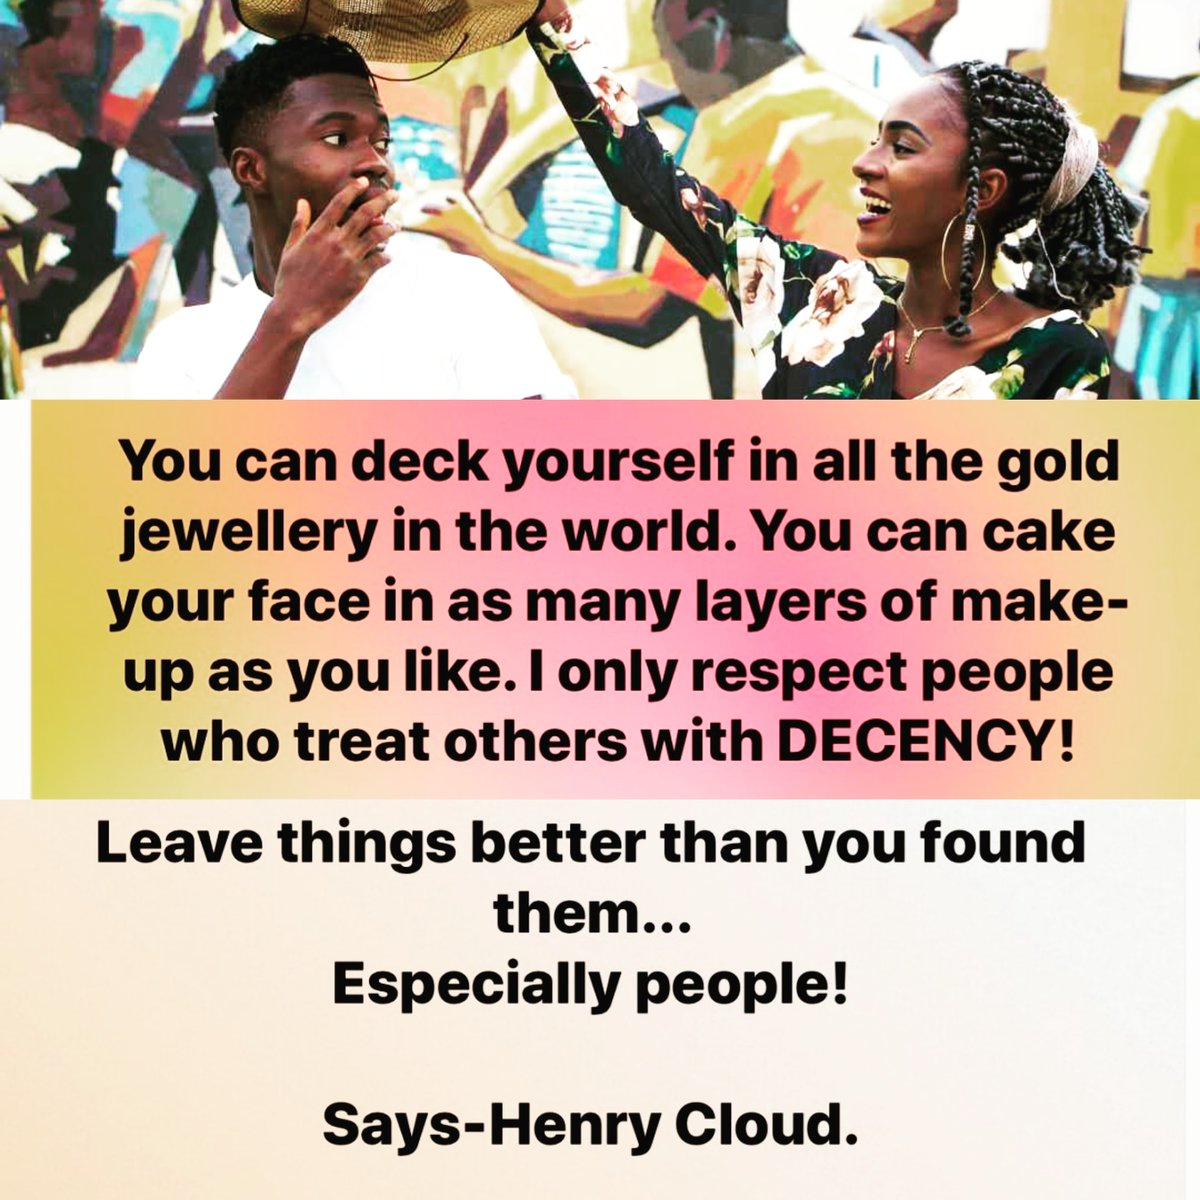 To Be Decent Can't Be That Hard!  Please, keep reading on my blog...  https://www.rukasplace.com/2020/05/29/to-be-decent-cant-be-that-hard-2/…  #decencycostsnothing #decency #decenthuman #decent #positivevibes #genuinepeople #nigerianblogger #niceperson #african #blackrace #blackpeople #tobedecent #rukasplace #dublinirelandpic.twitter.com/OCpRPdYtyj